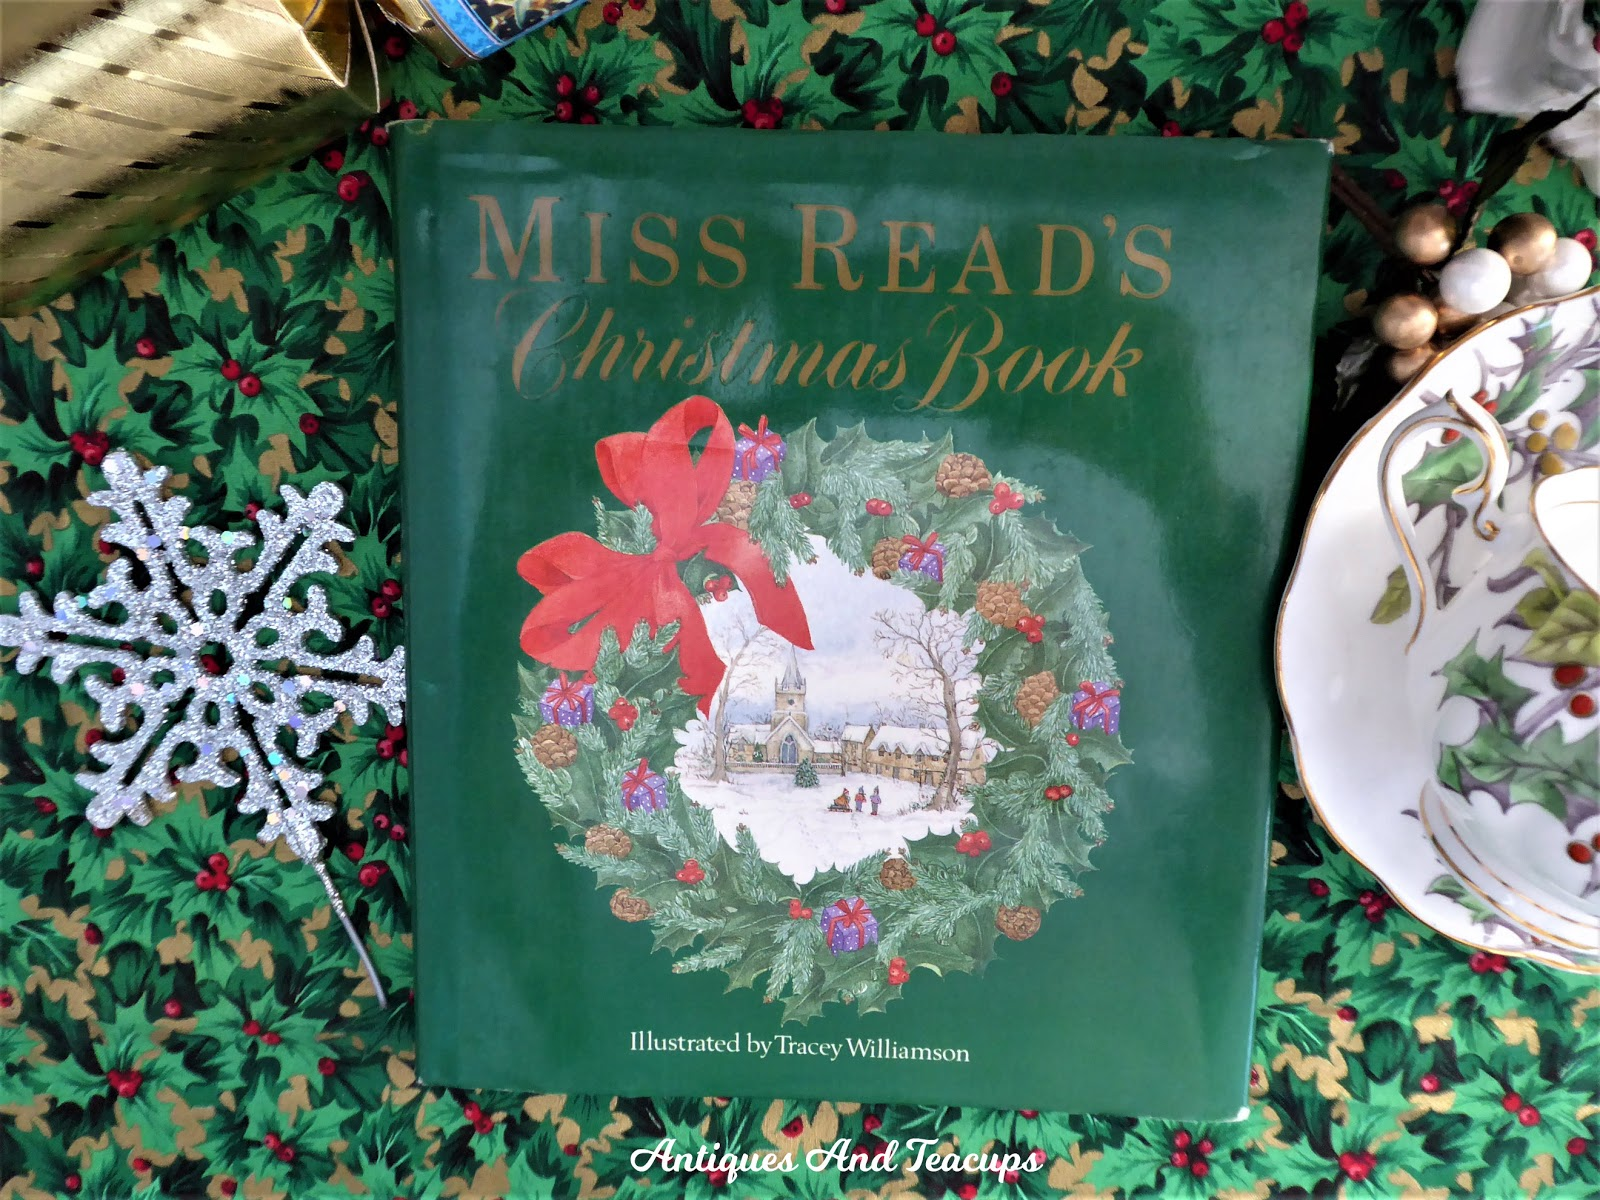 Antiques And Teacups: December 10th Antique Christmas